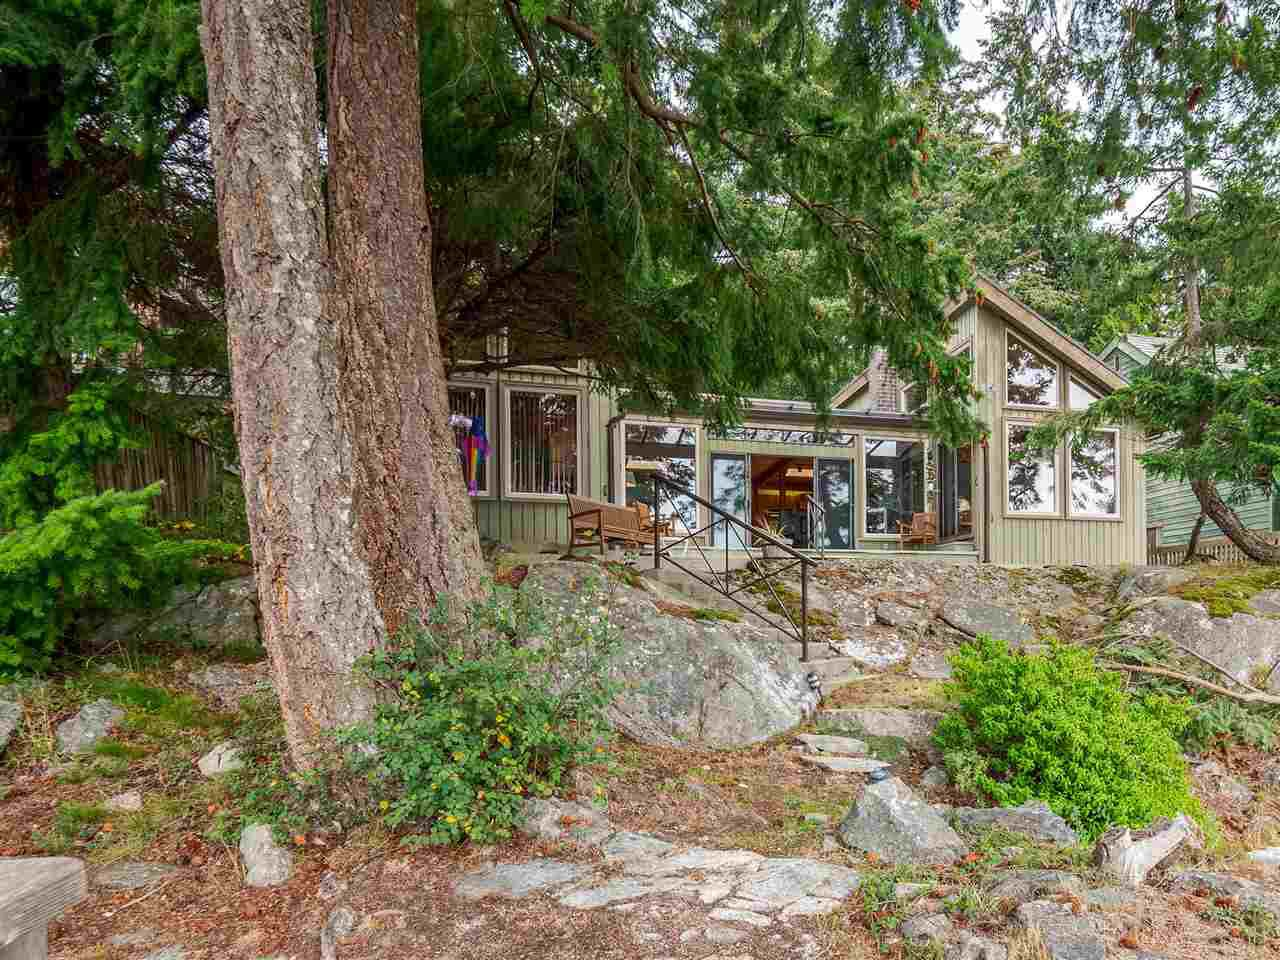 Main Photo: 9185 HYDAWAY Road in Sechelt: Halfmn Bay Secret Cv Redroofs House for sale (Sunshine Coast)  : MLS®# R2504559